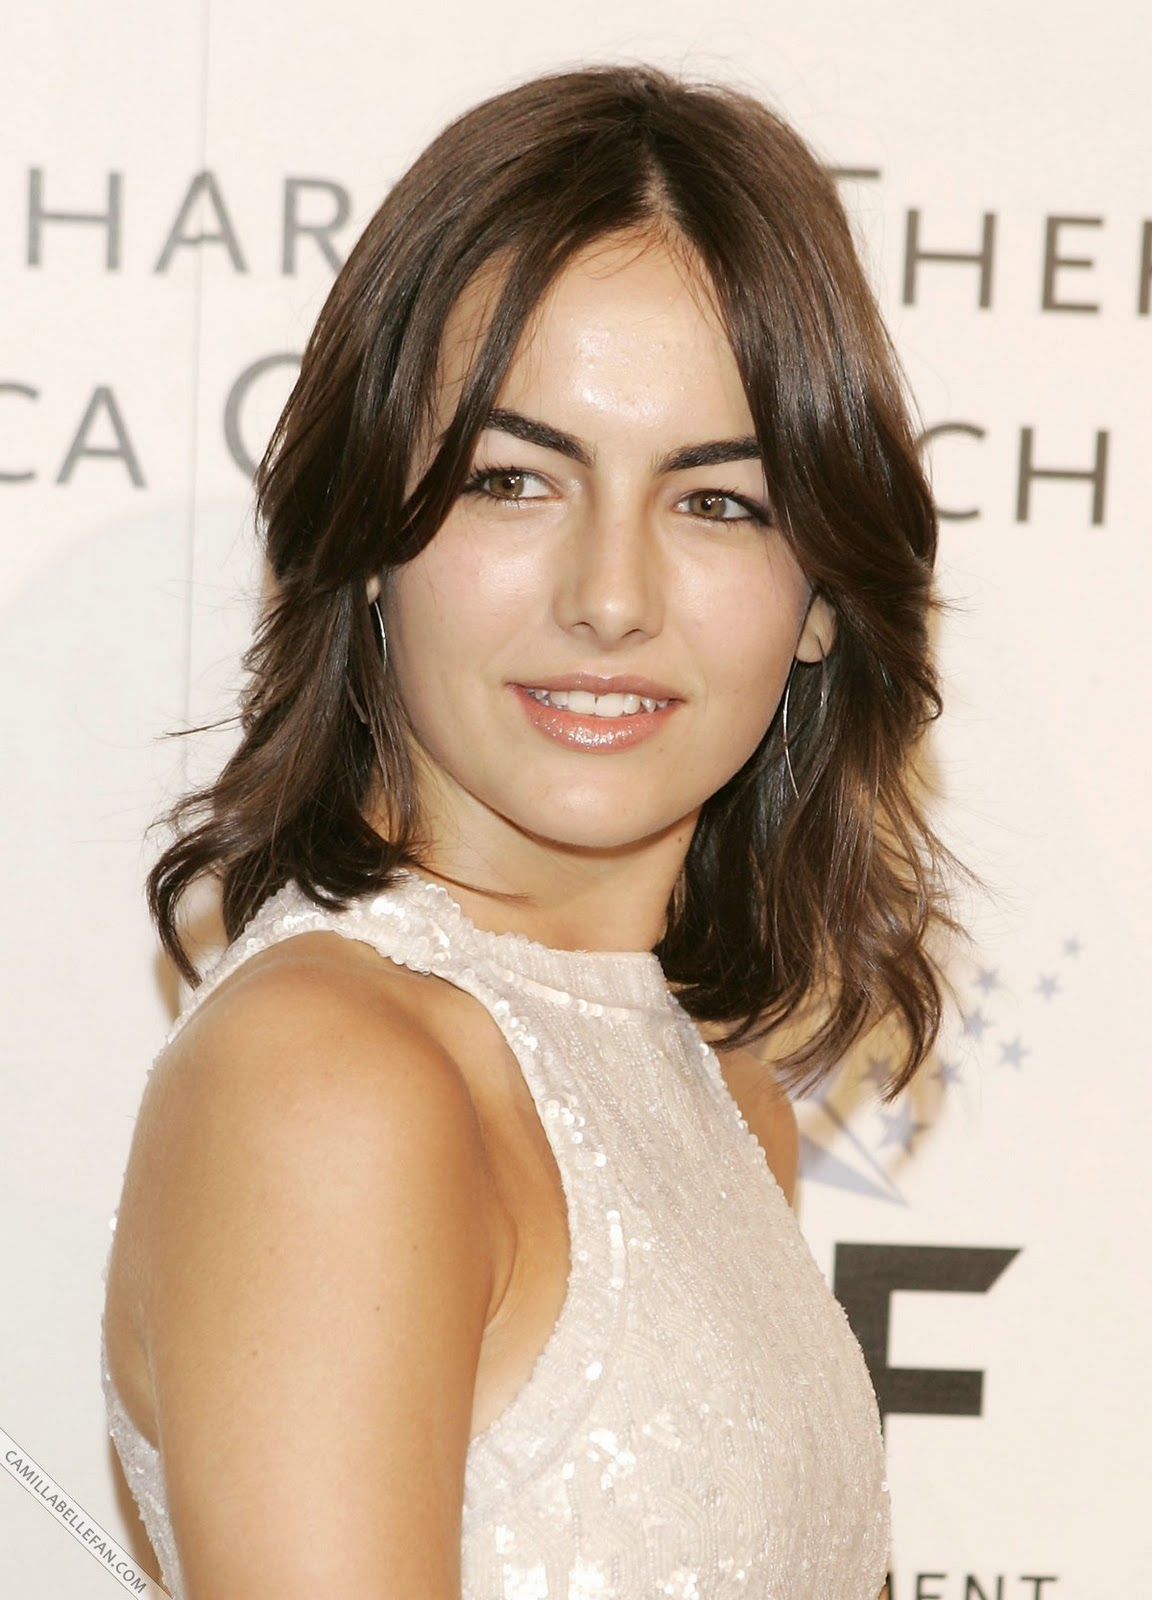 Camilla belle routh hotsex images, naked women interview video